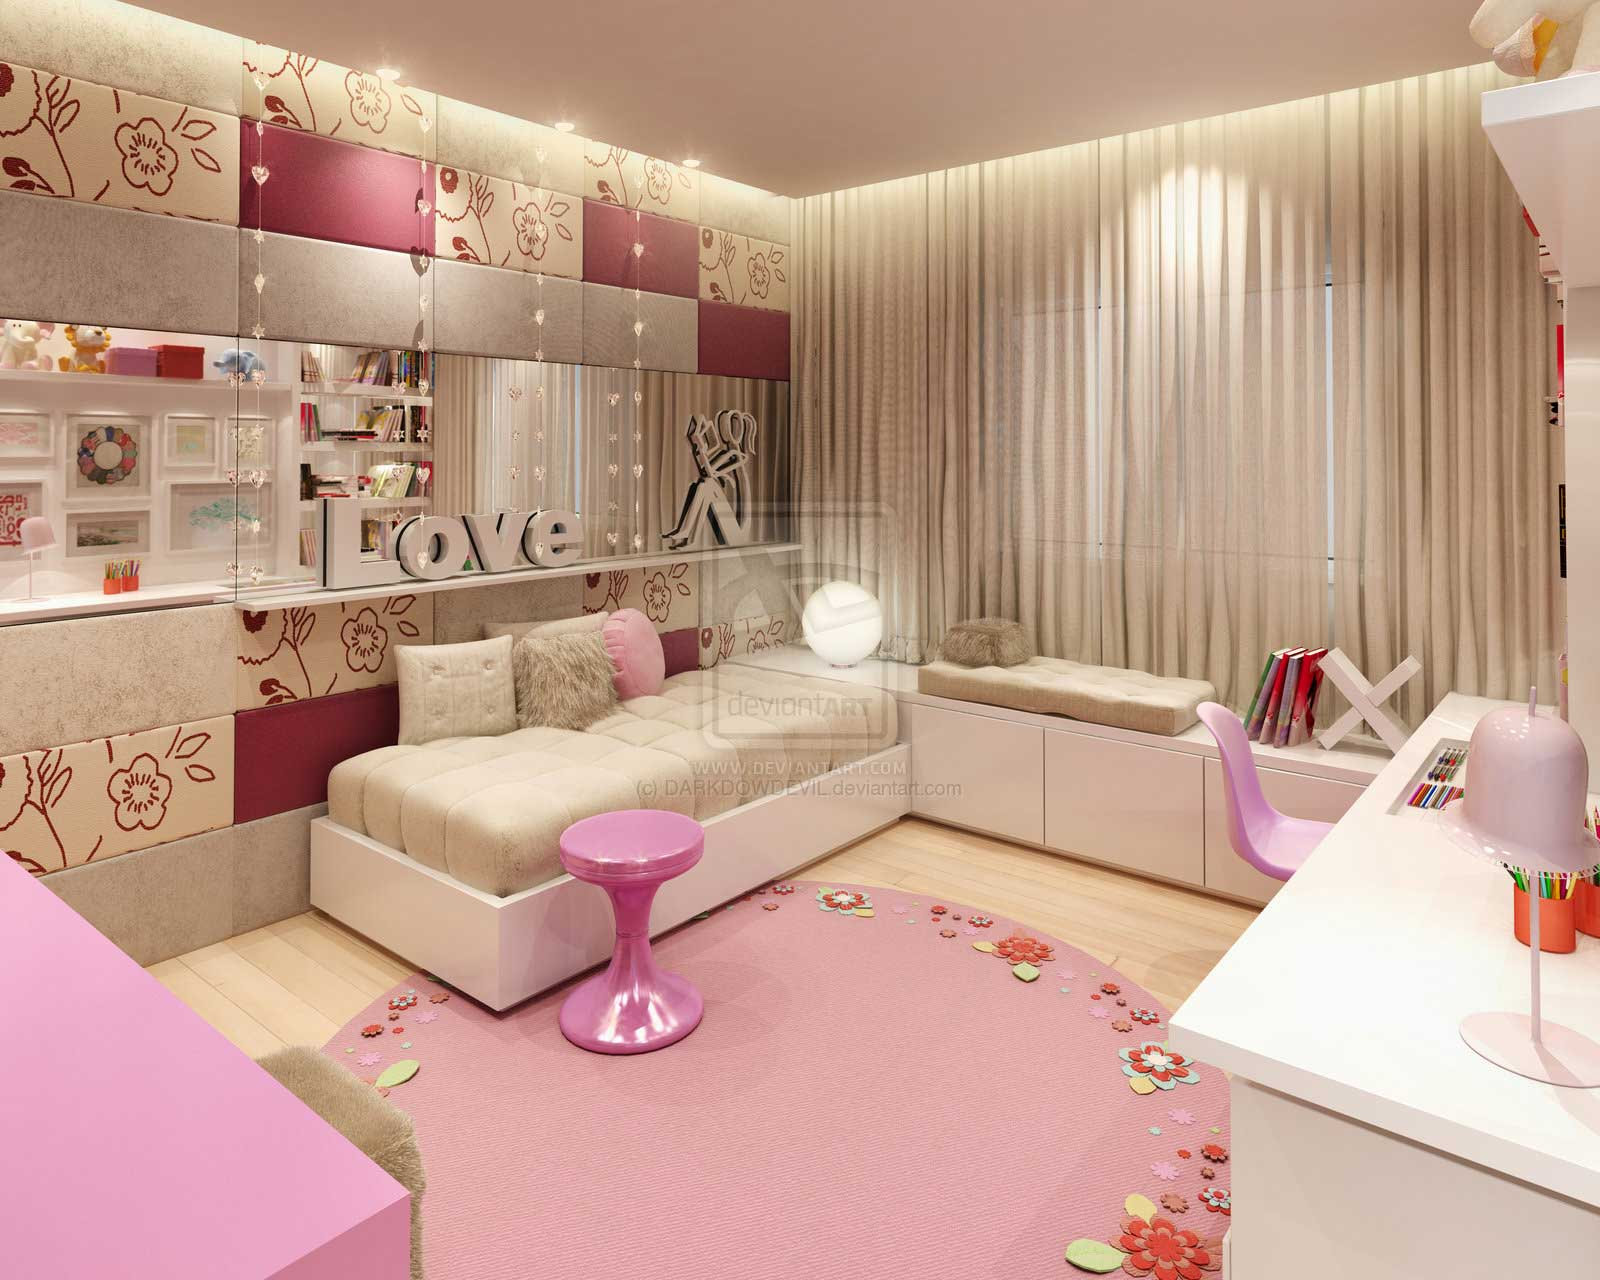 Comfort pink girl bedroom by darkdowdevil interior for Interior design bedroom pink